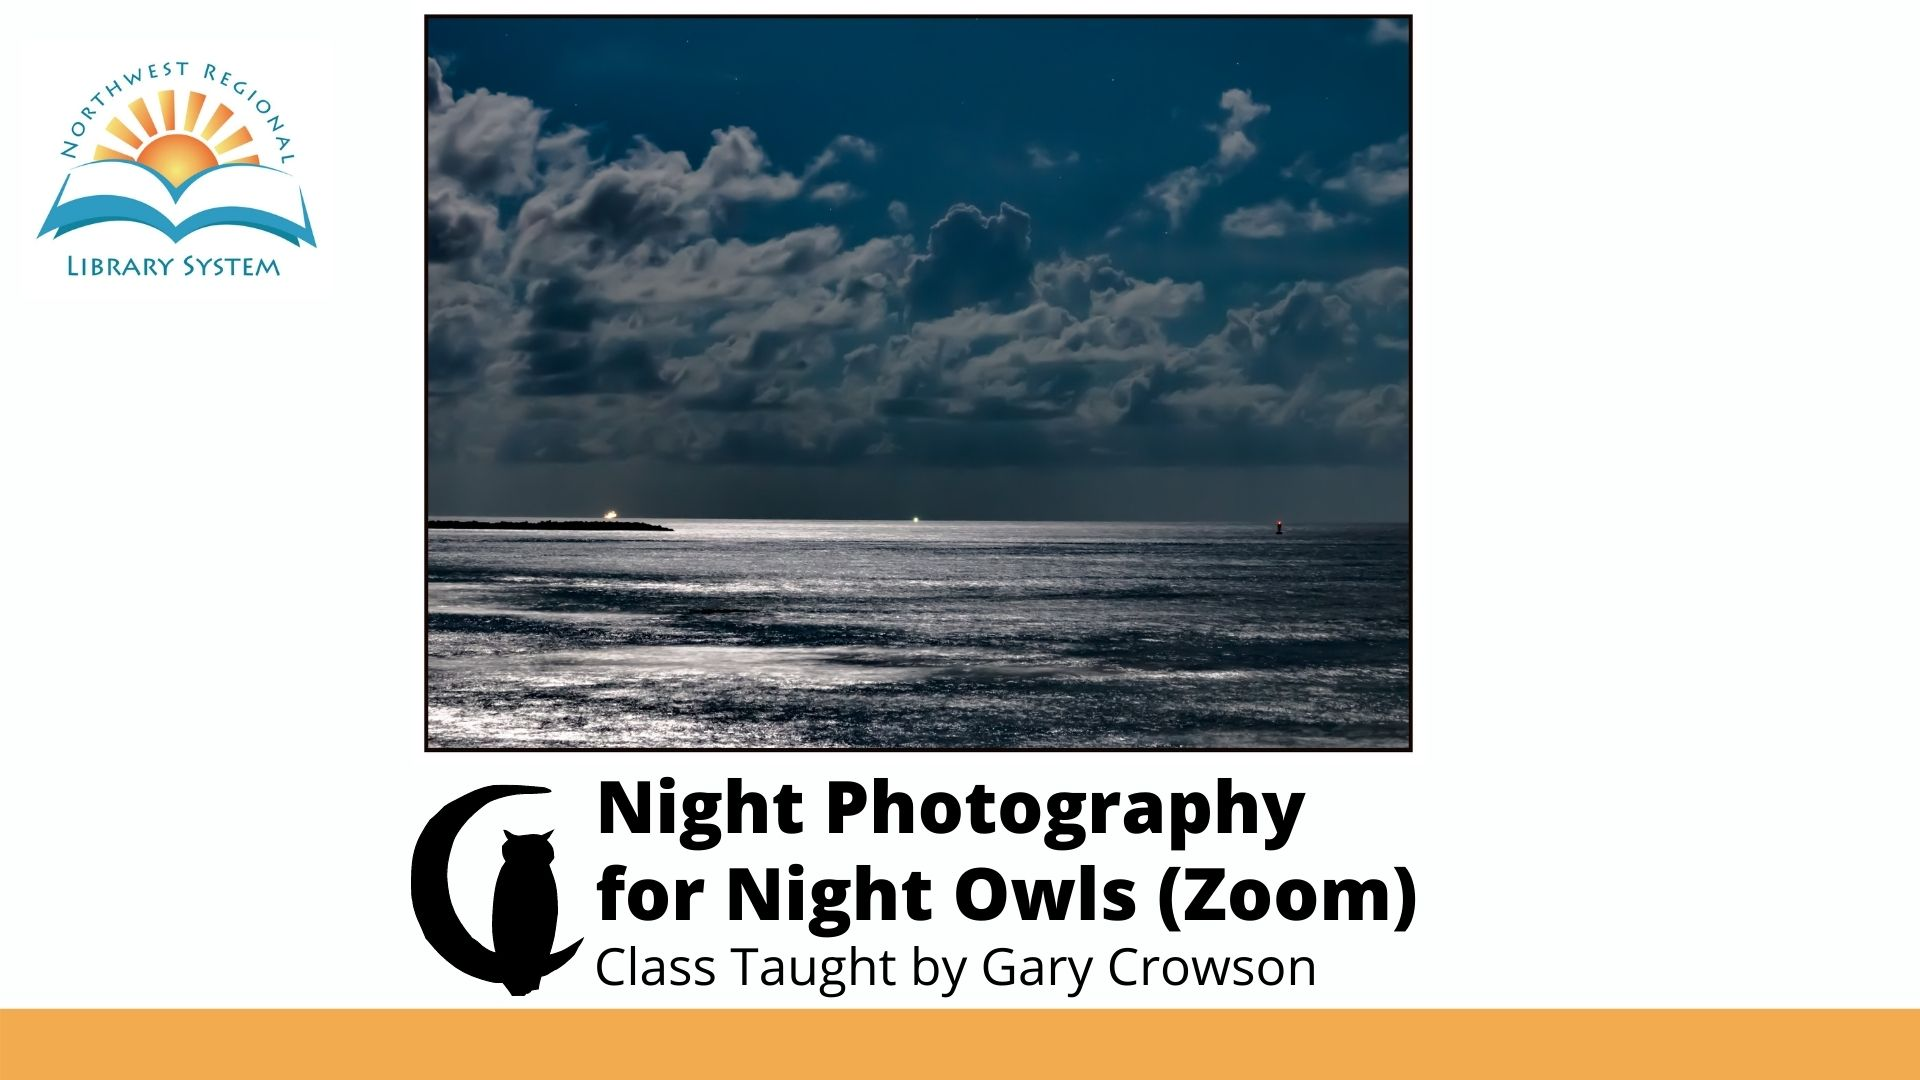 Night Photography for Night Owls